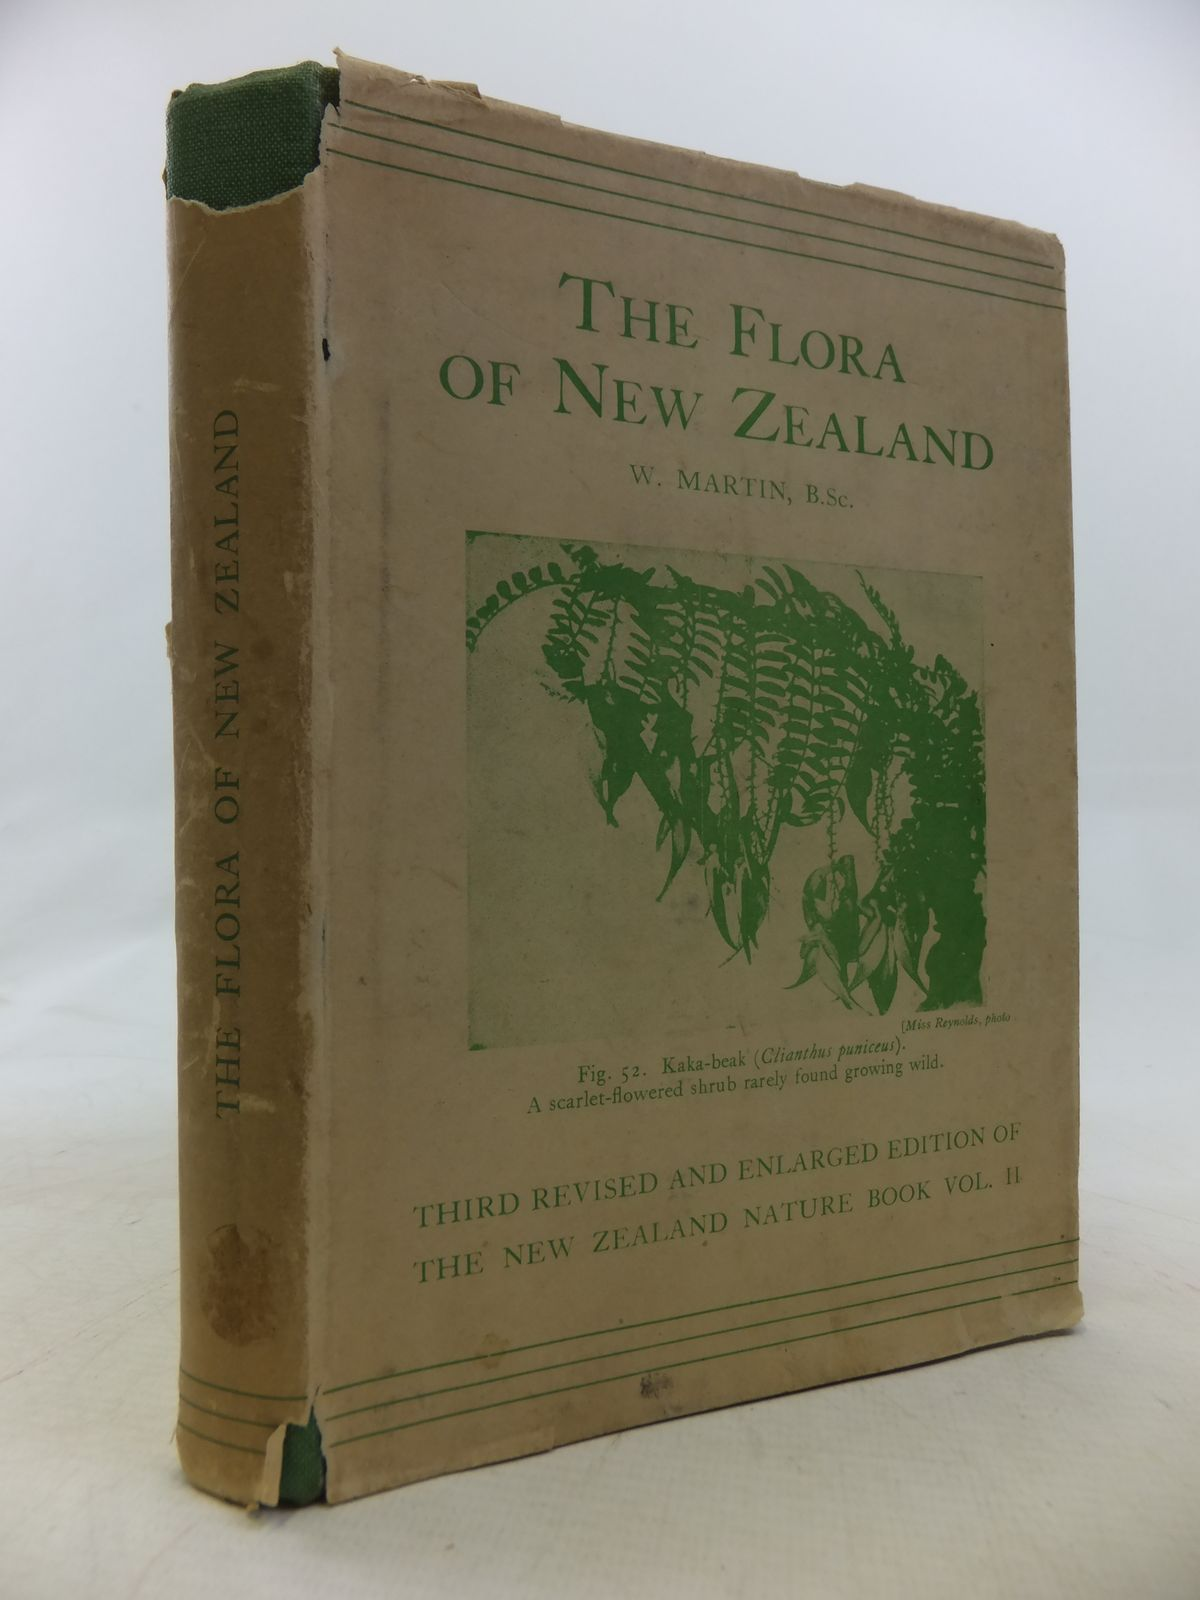 Photo of THE FLORA OF NEW ZEALAND written by Martin, W. published by Whitcombe and Tombs (STOCK CODE: 1809278)  for sale by Stella & Rose's Books